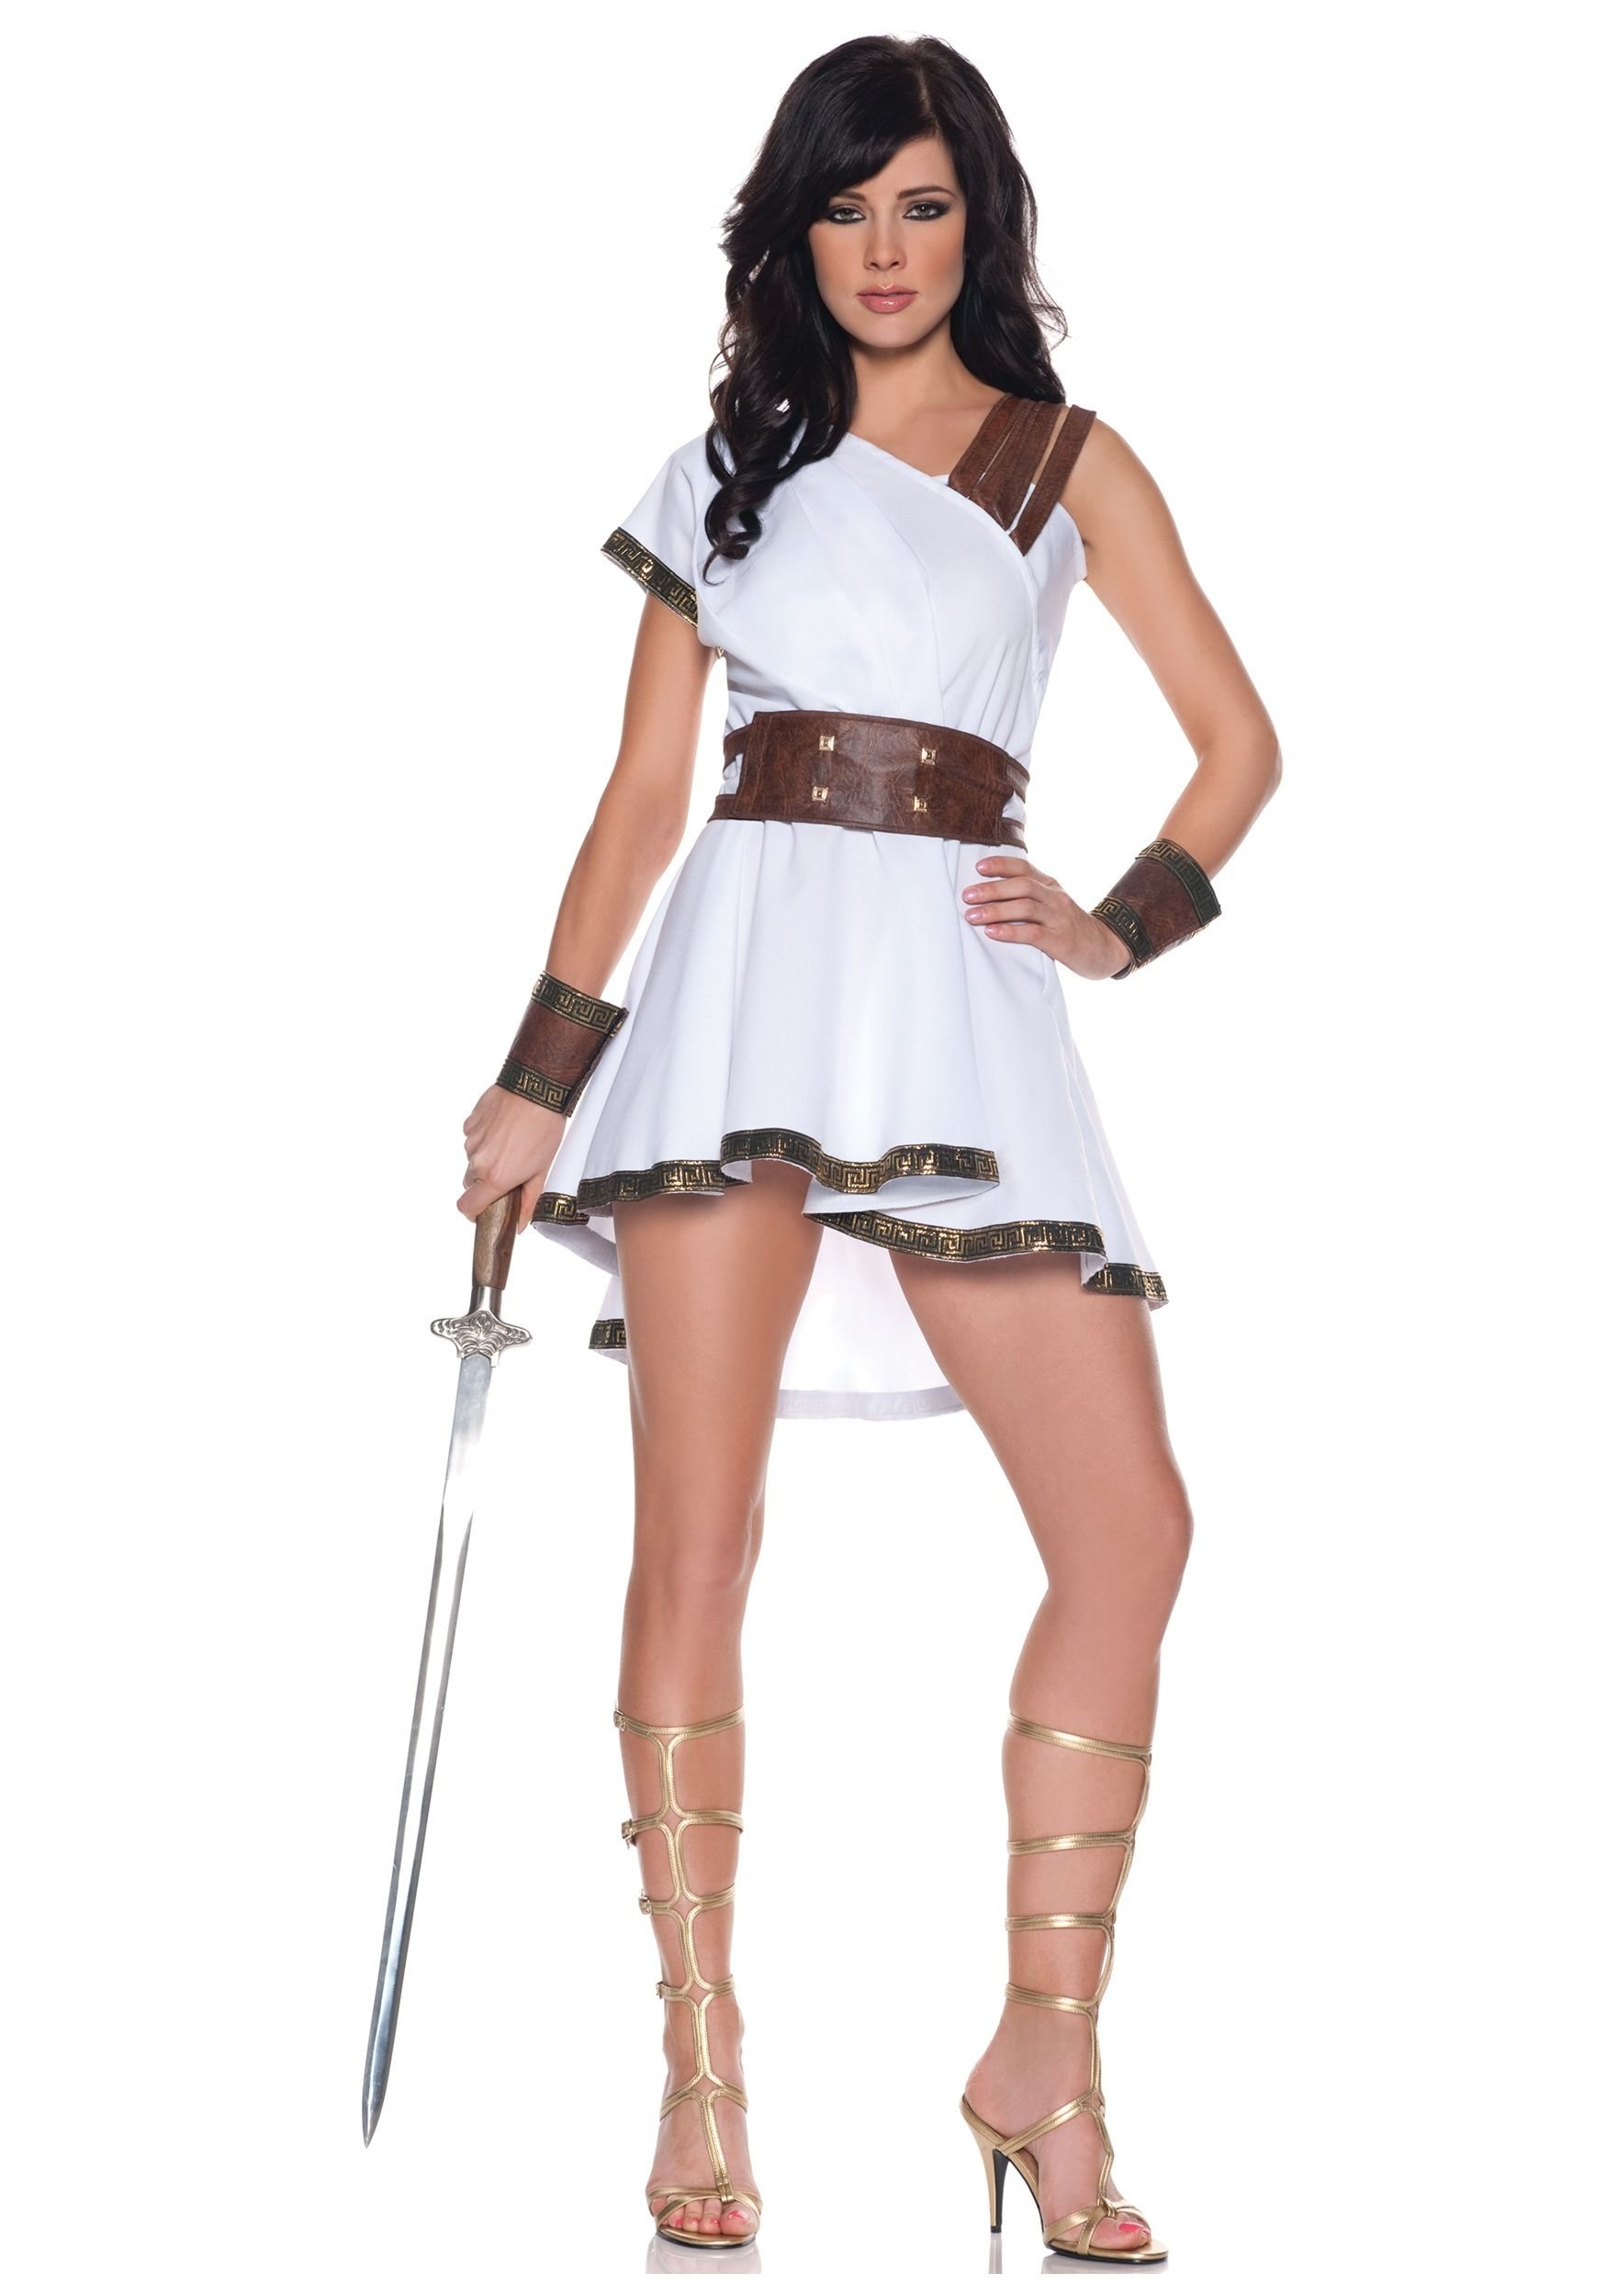 10 Awesome Cute Halloween Costume Ideas For Women greek olympia costume womens sexy toga costume ideas  sc 1 st  Unique Ideas 2018 & 10 Awesome Cute Halloween Costume Ideas For Women